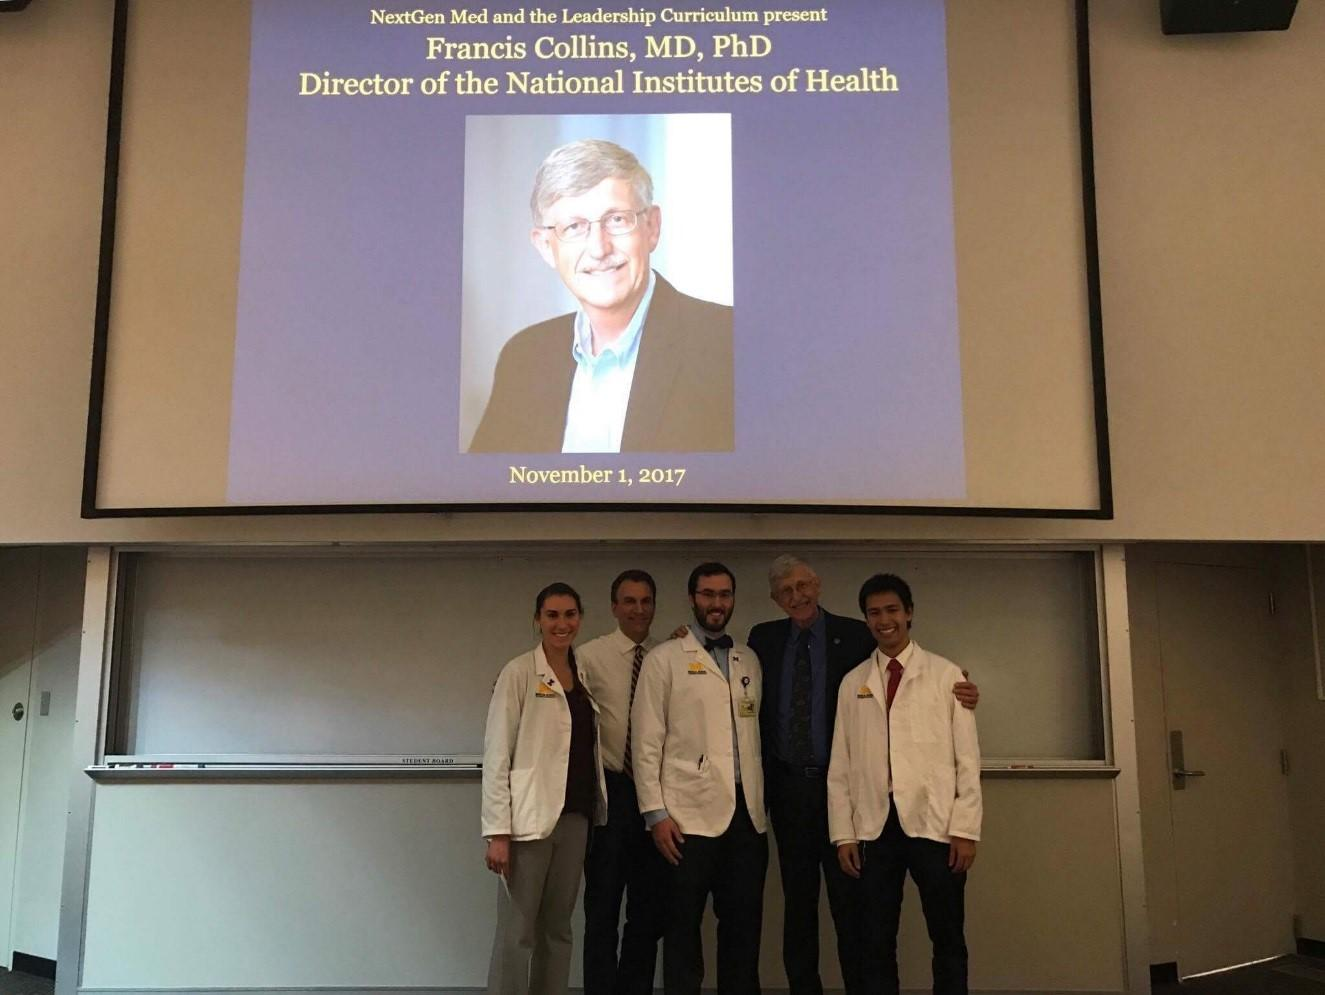 Francis Collins, MD, with Michigan medical students